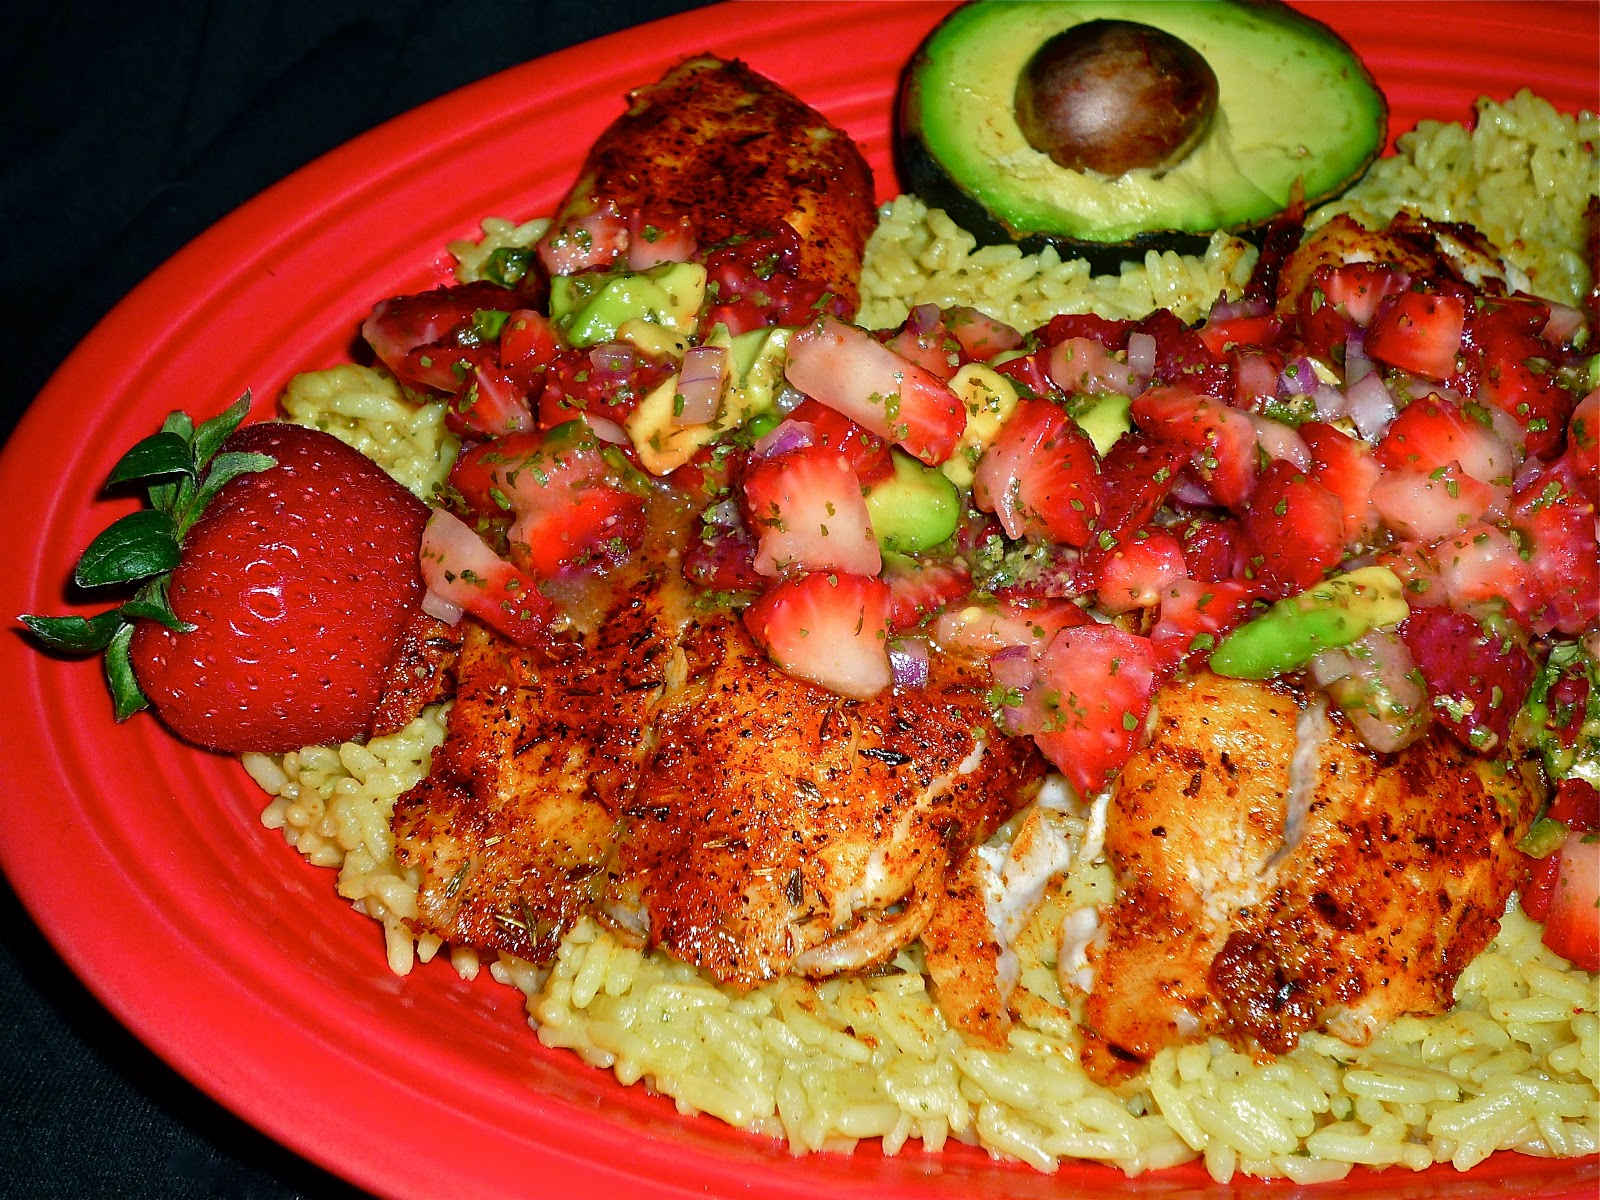 ... ...Featuring Spicy Seared Tilapia with Strawberry-Avocado Salsa